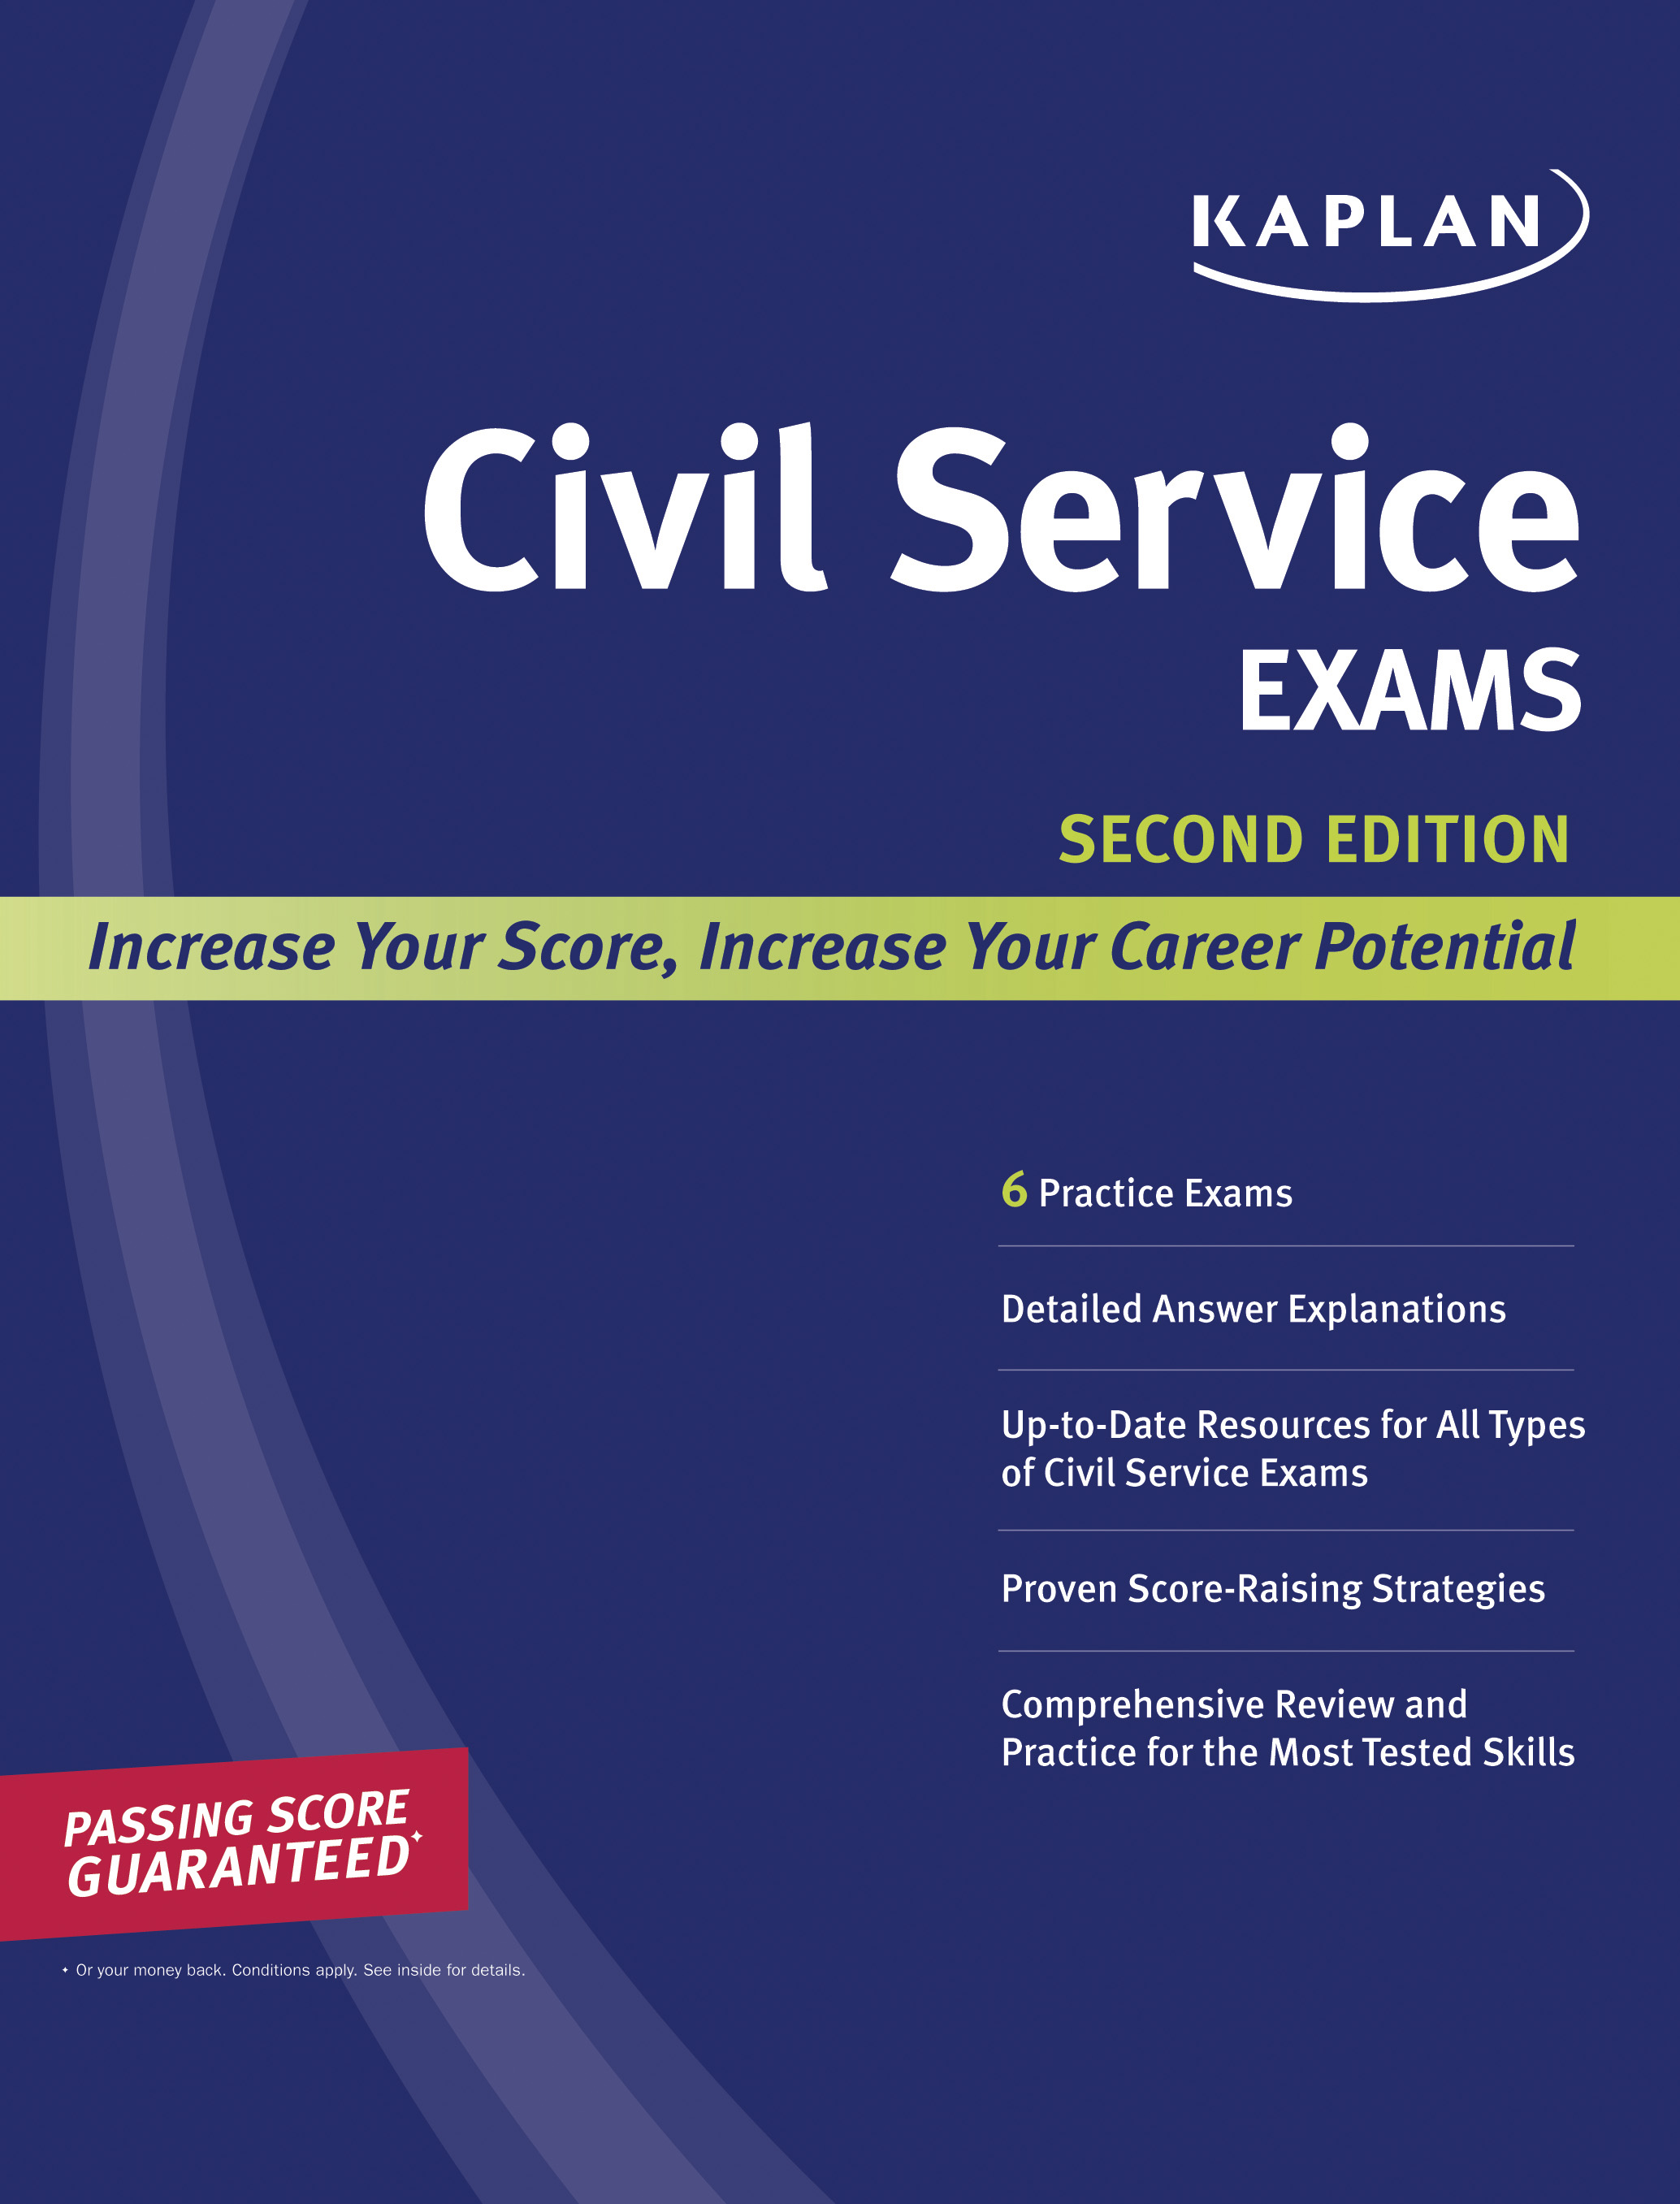 test guides for civil service exams